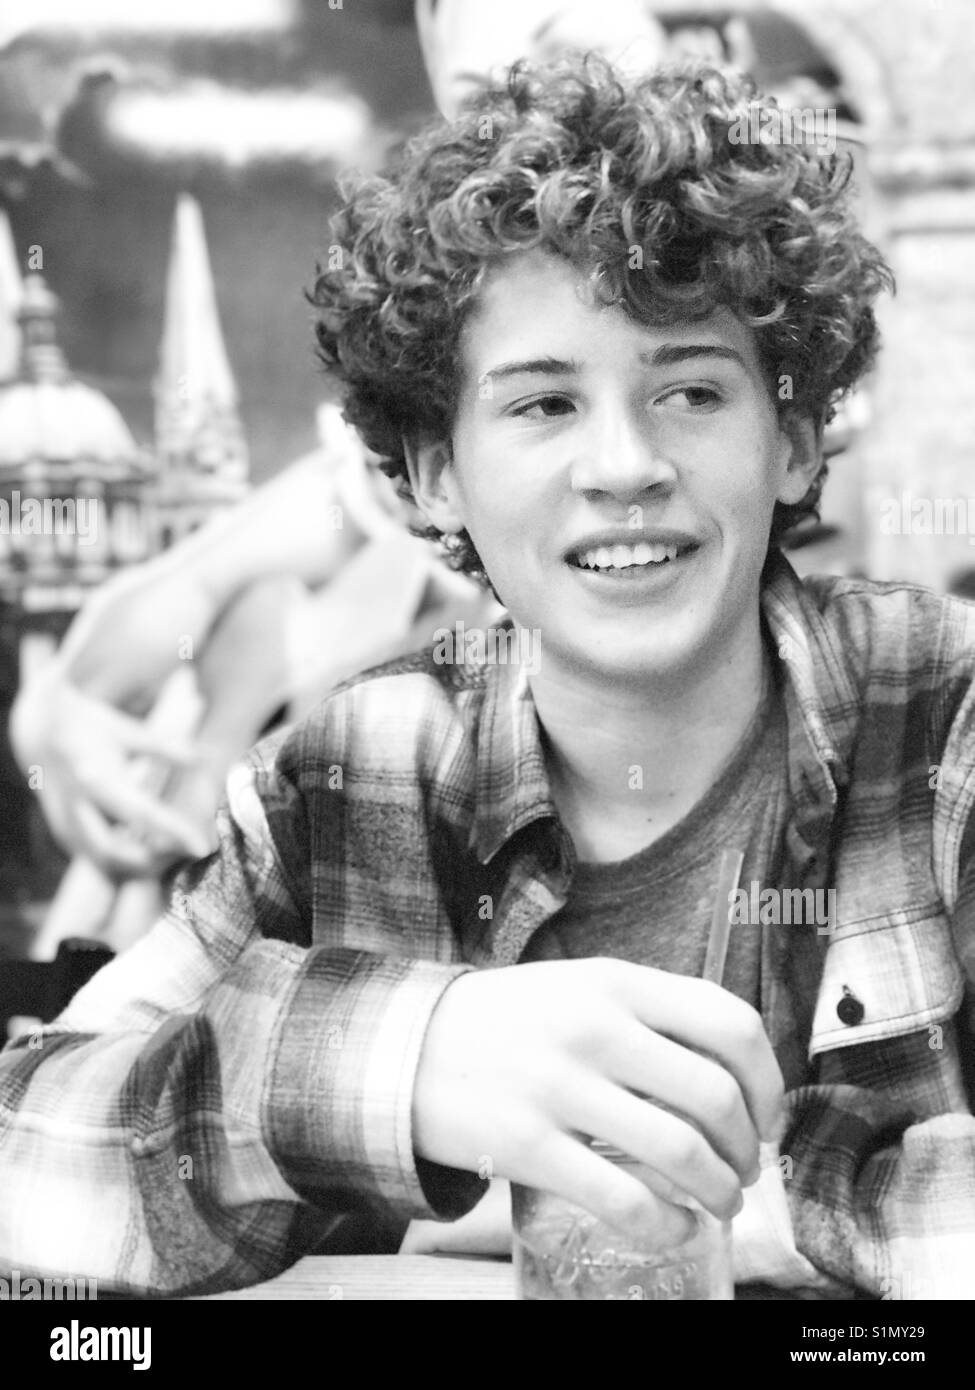 Curly Hair Boy Black And White Stock Photos Images Alamy